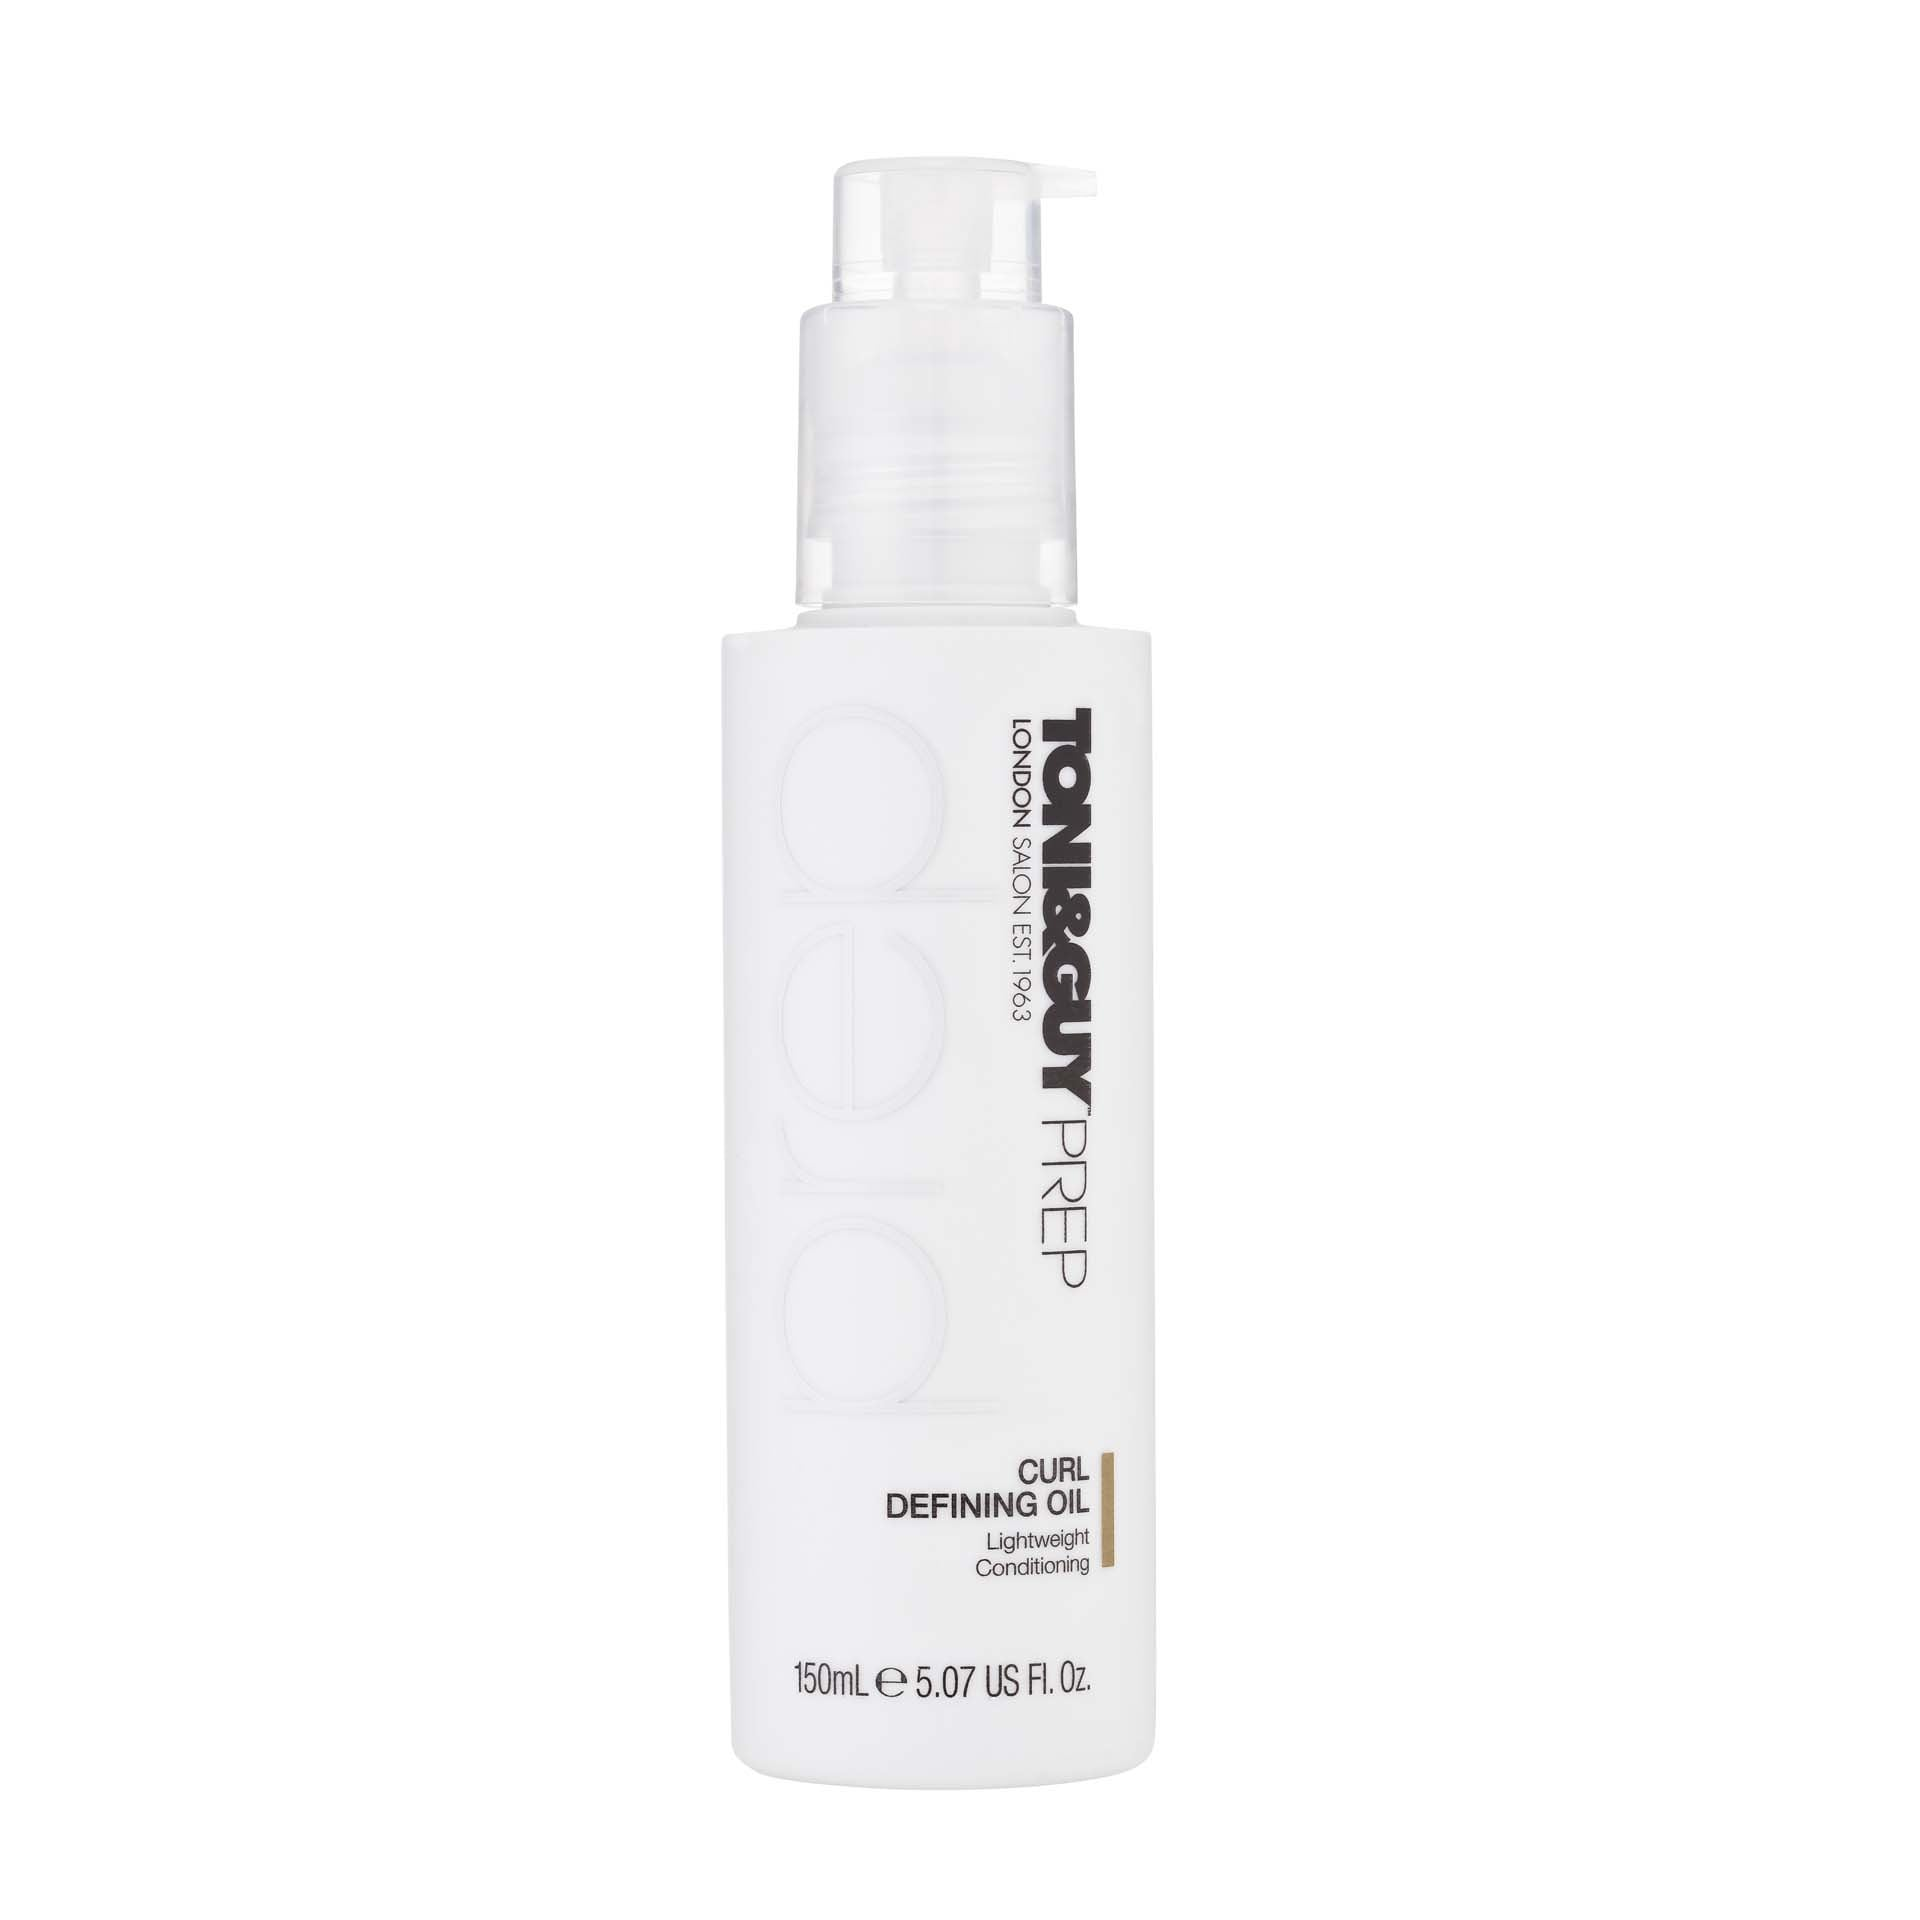 hair curling products toni and guy